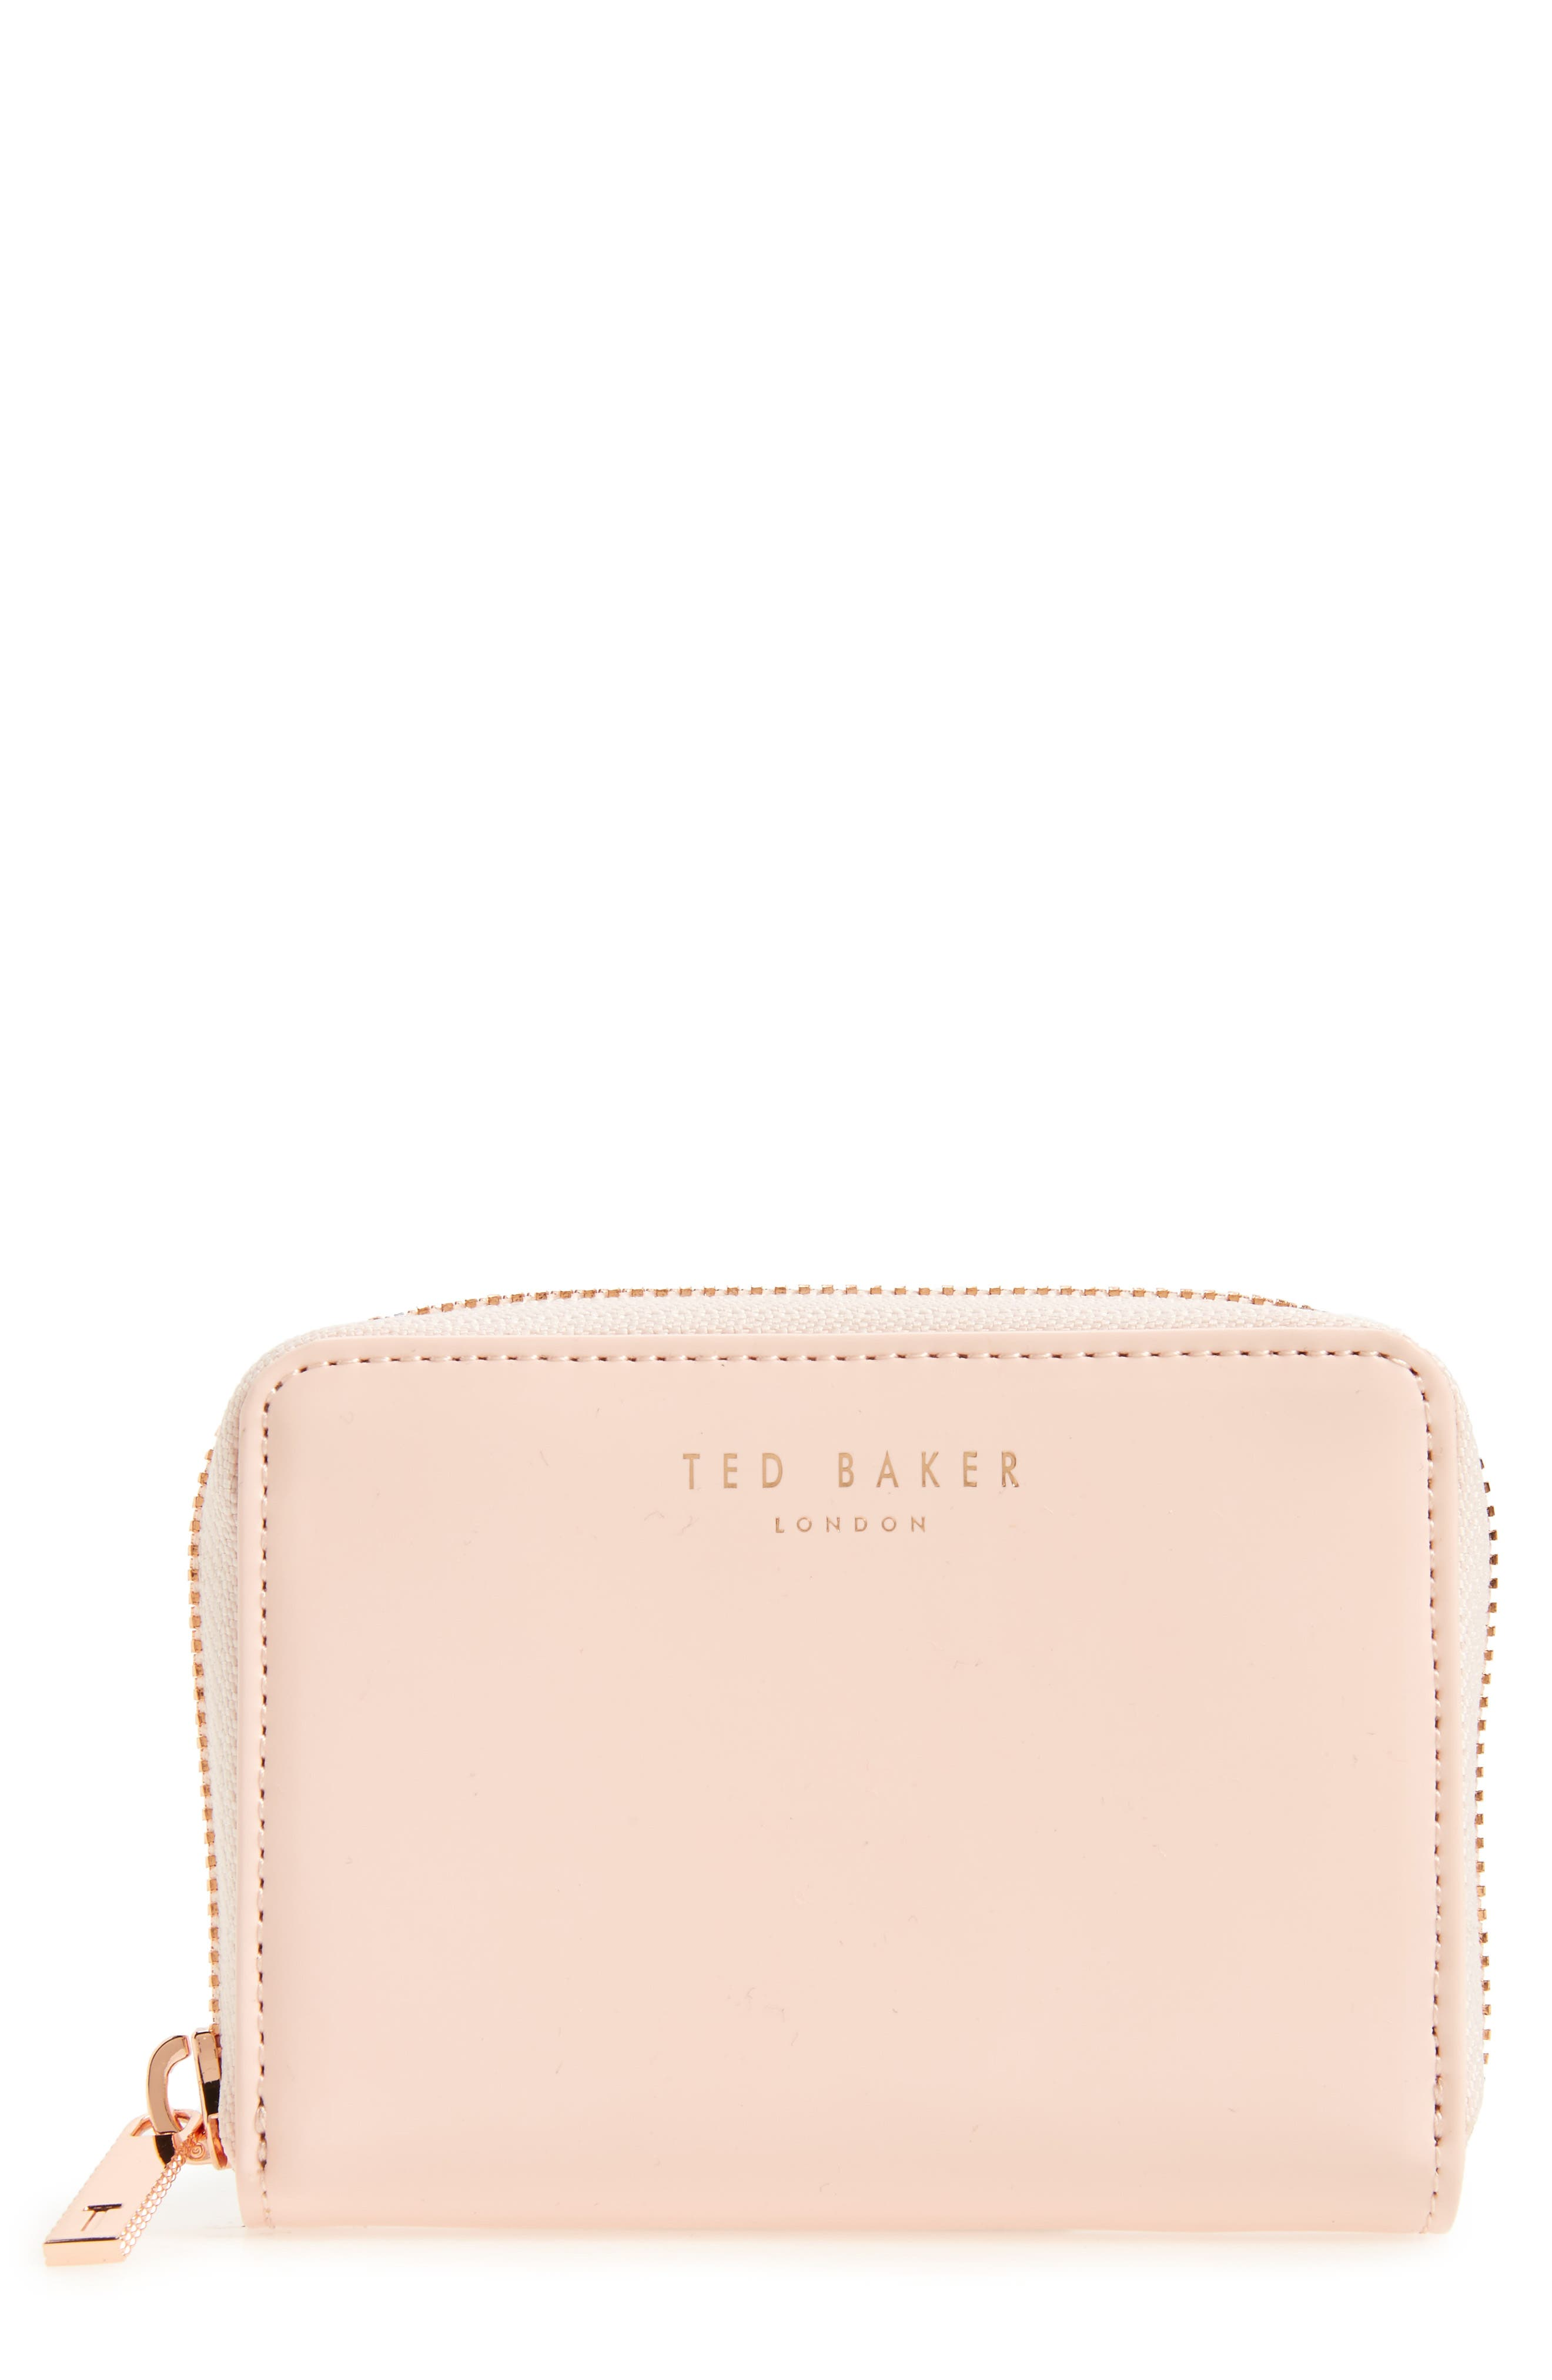 Beryl Leather Mini Purse,                         Main,                         color, Baby Pink